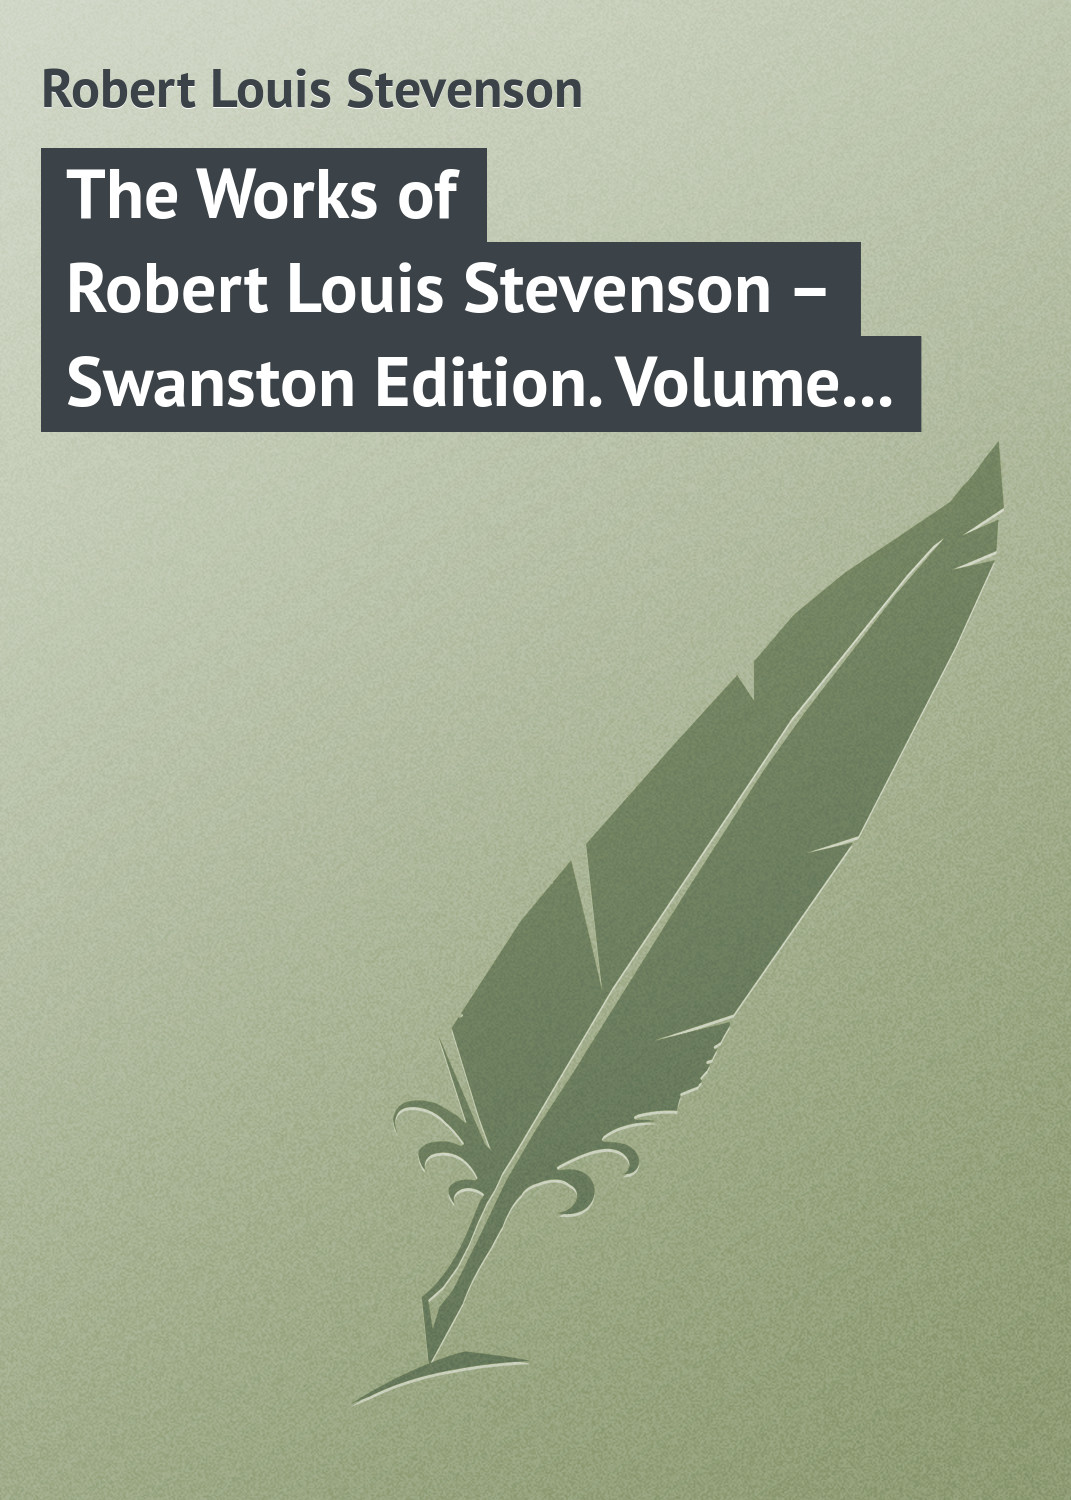 Роберт Льюис Стивенсон The Works of Robert Louis Stevenson – Swanston Edition. Volume 17 кухонная мойка omoikiri yonaka 78 lb pa 780х510 пастила 4993337